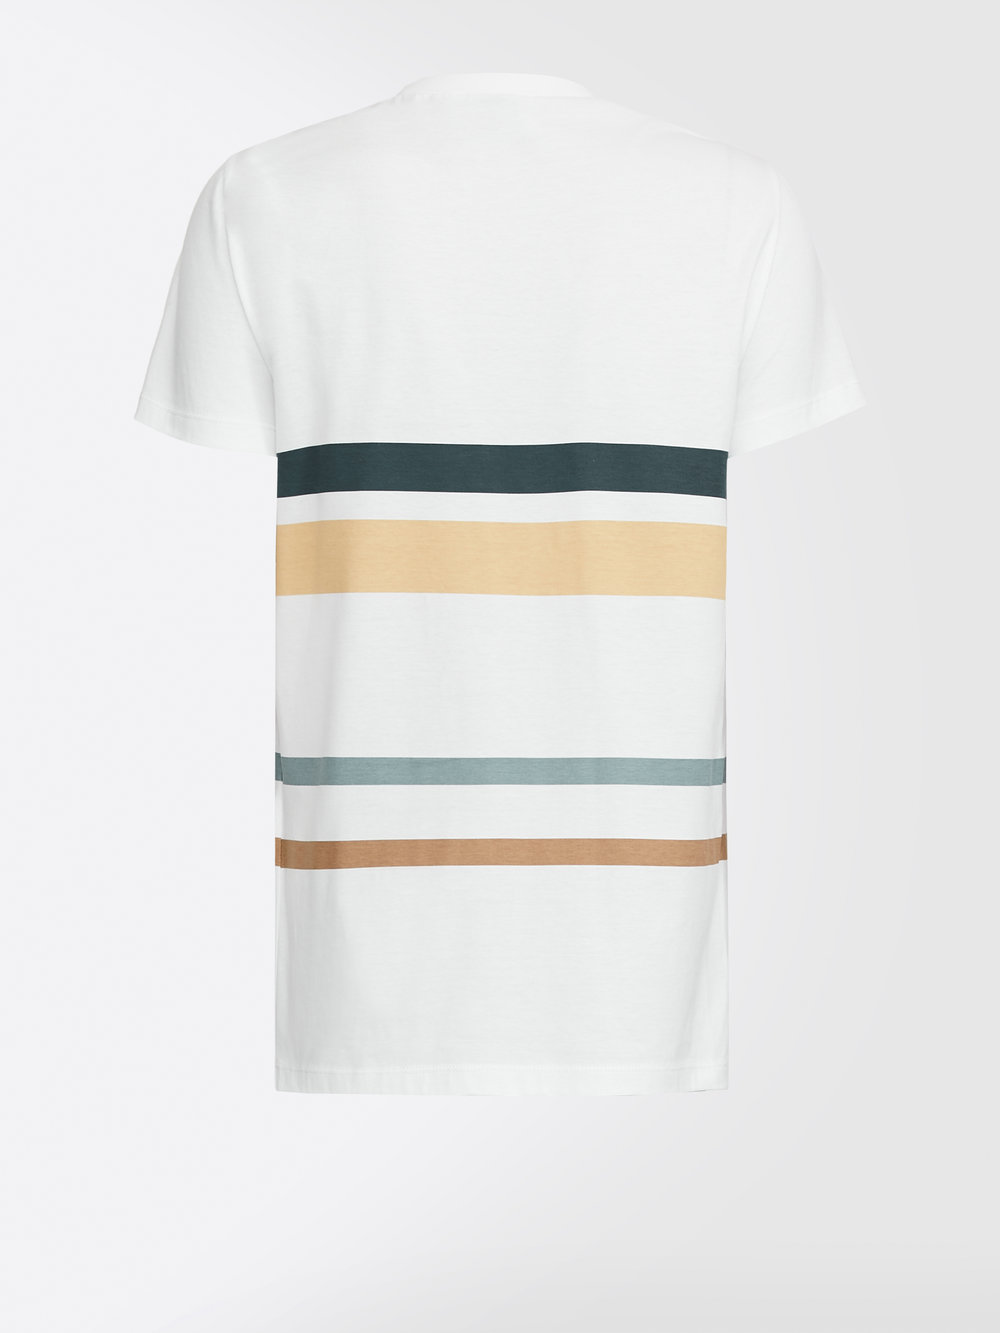 Judy Chicago limited-edition t-shirt in collaboration with Ian Griffiths, Max Mara Creative Director.